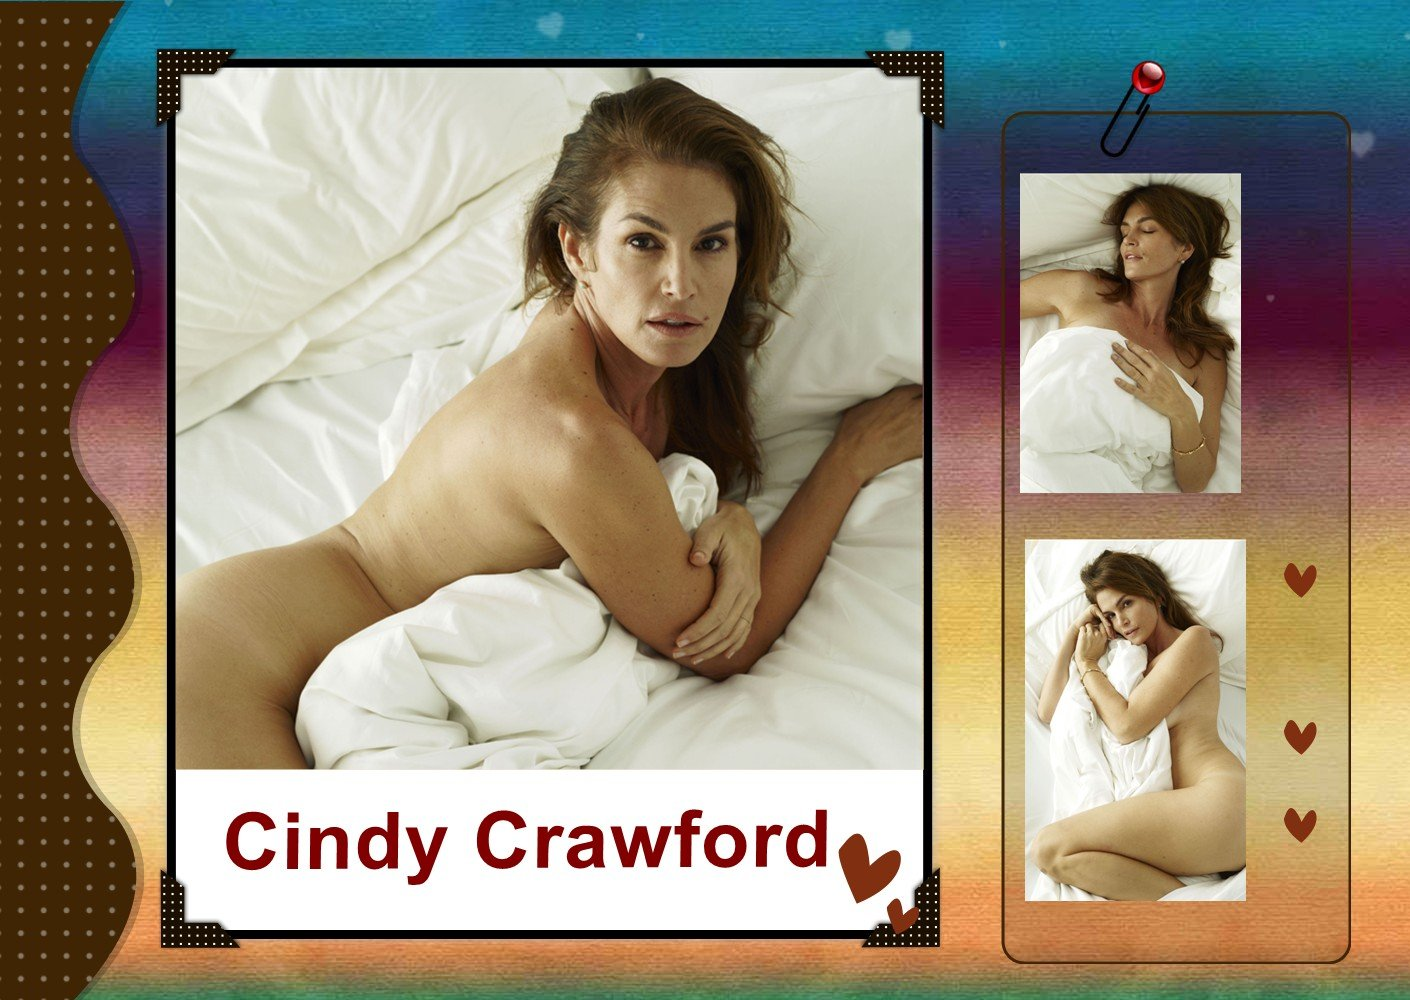 For that Cindy crawford new nude photos consider, that